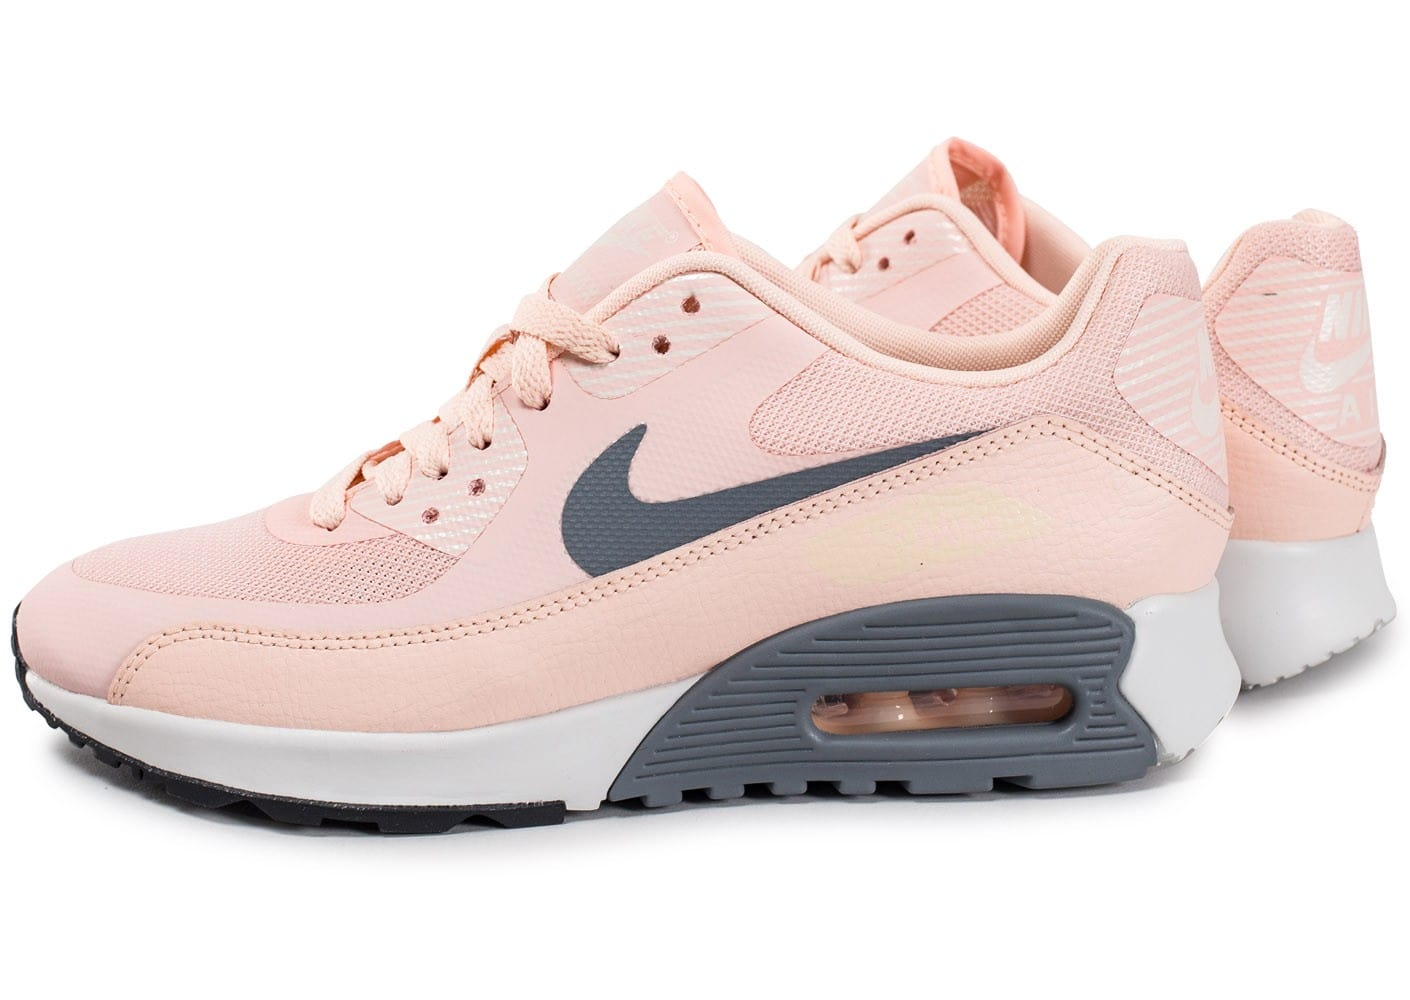 nike air max 90 chaussures rose